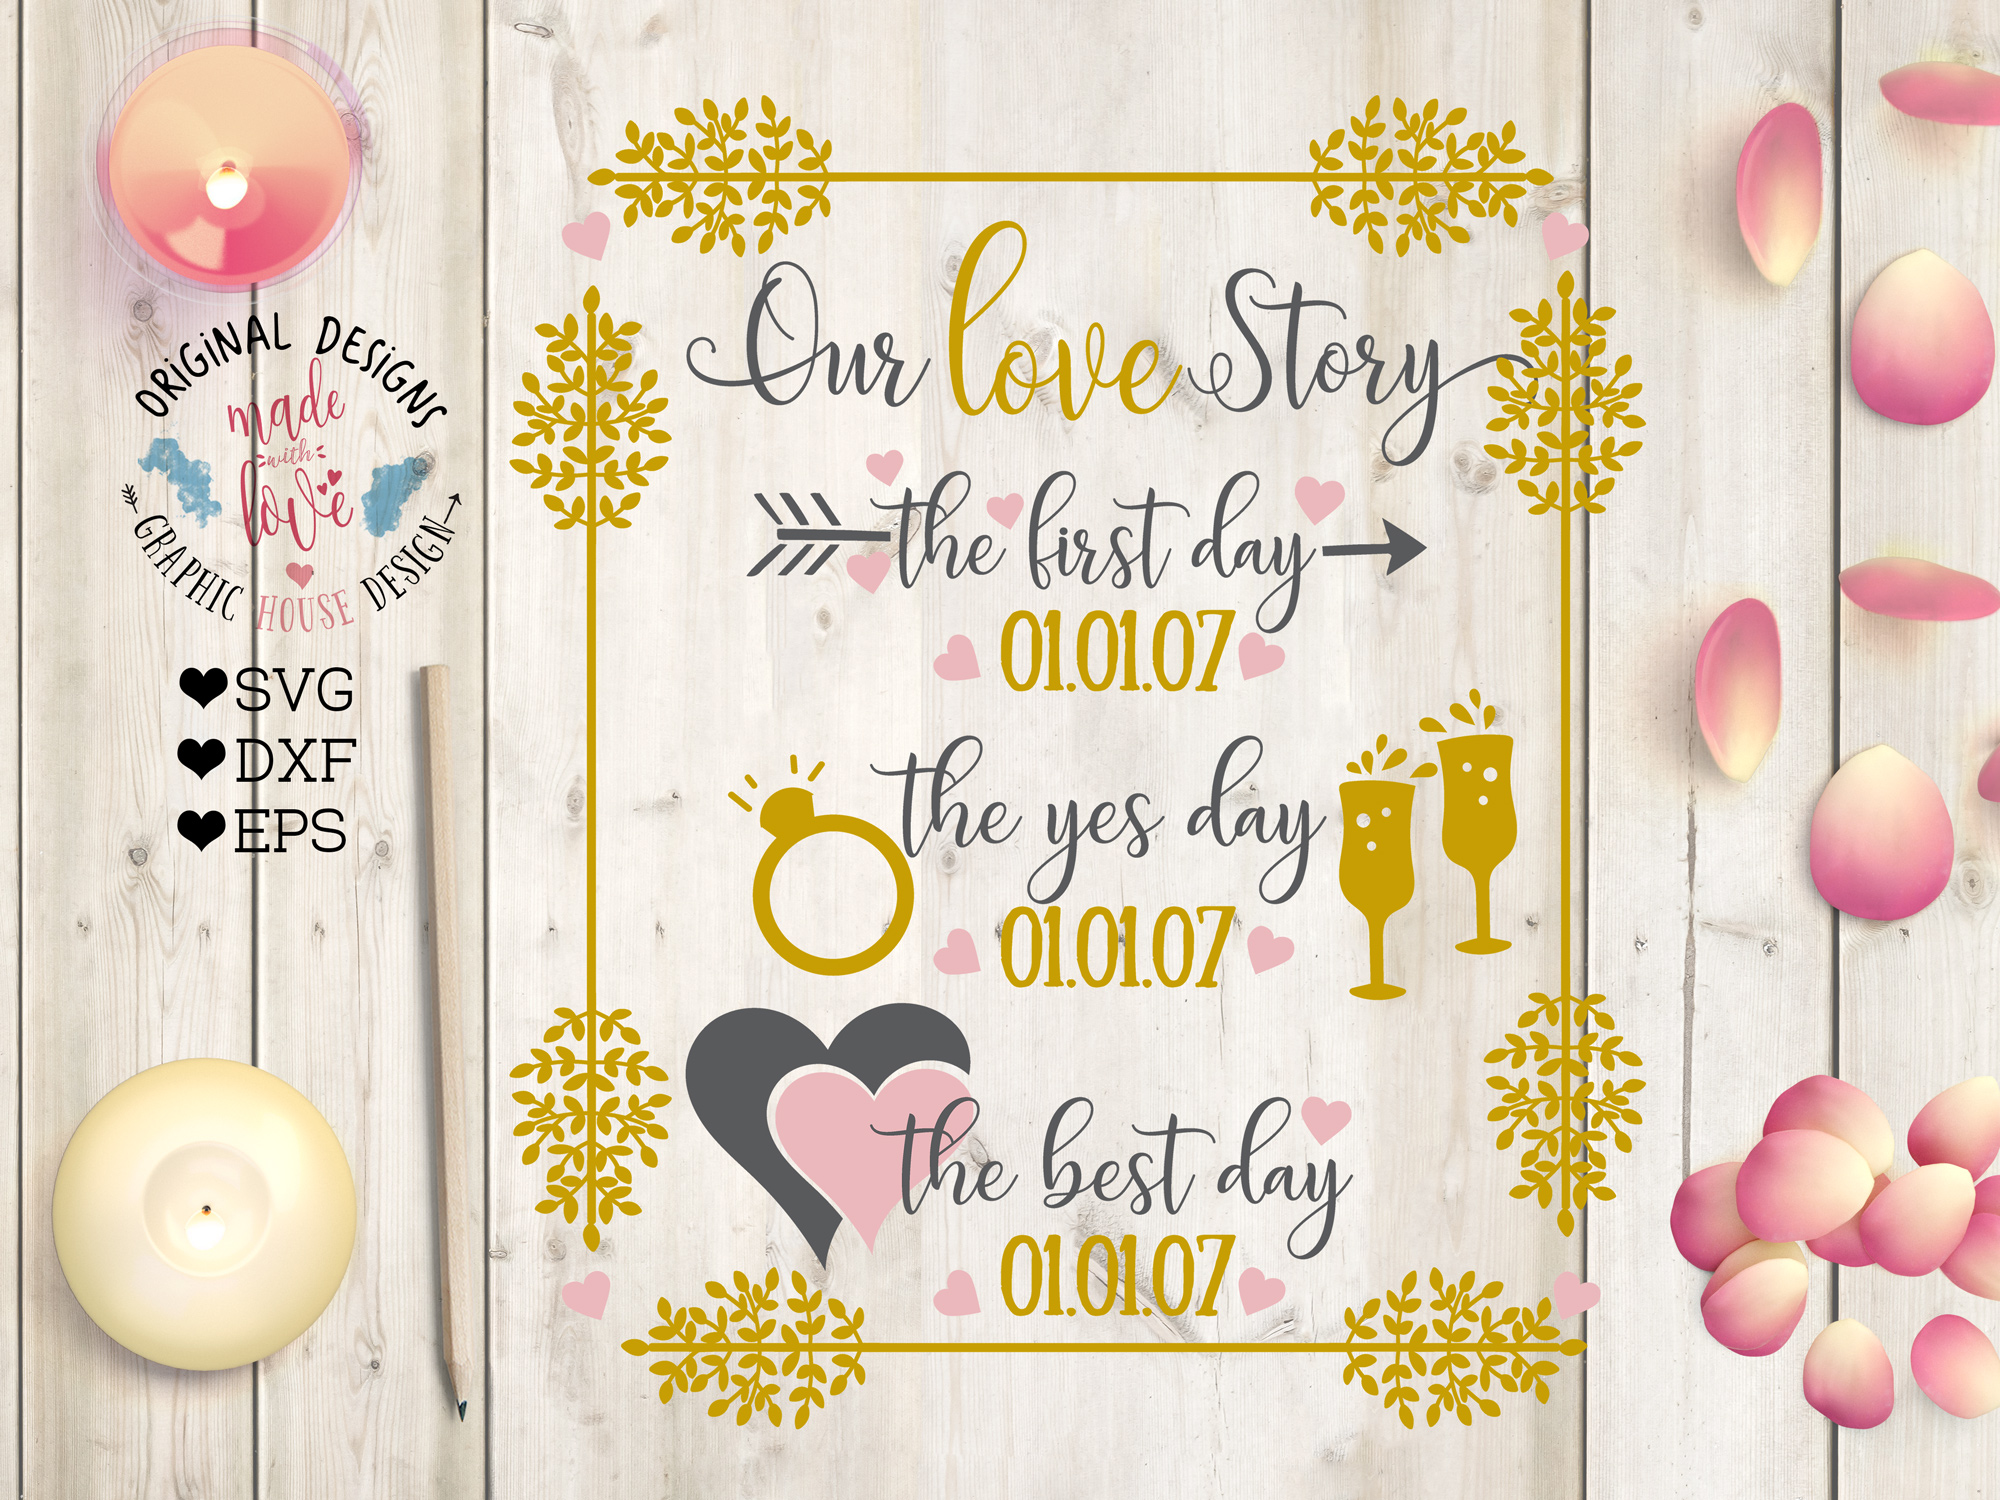 Our Love Story Cut File - Wedding Marriage Cut File example image 1